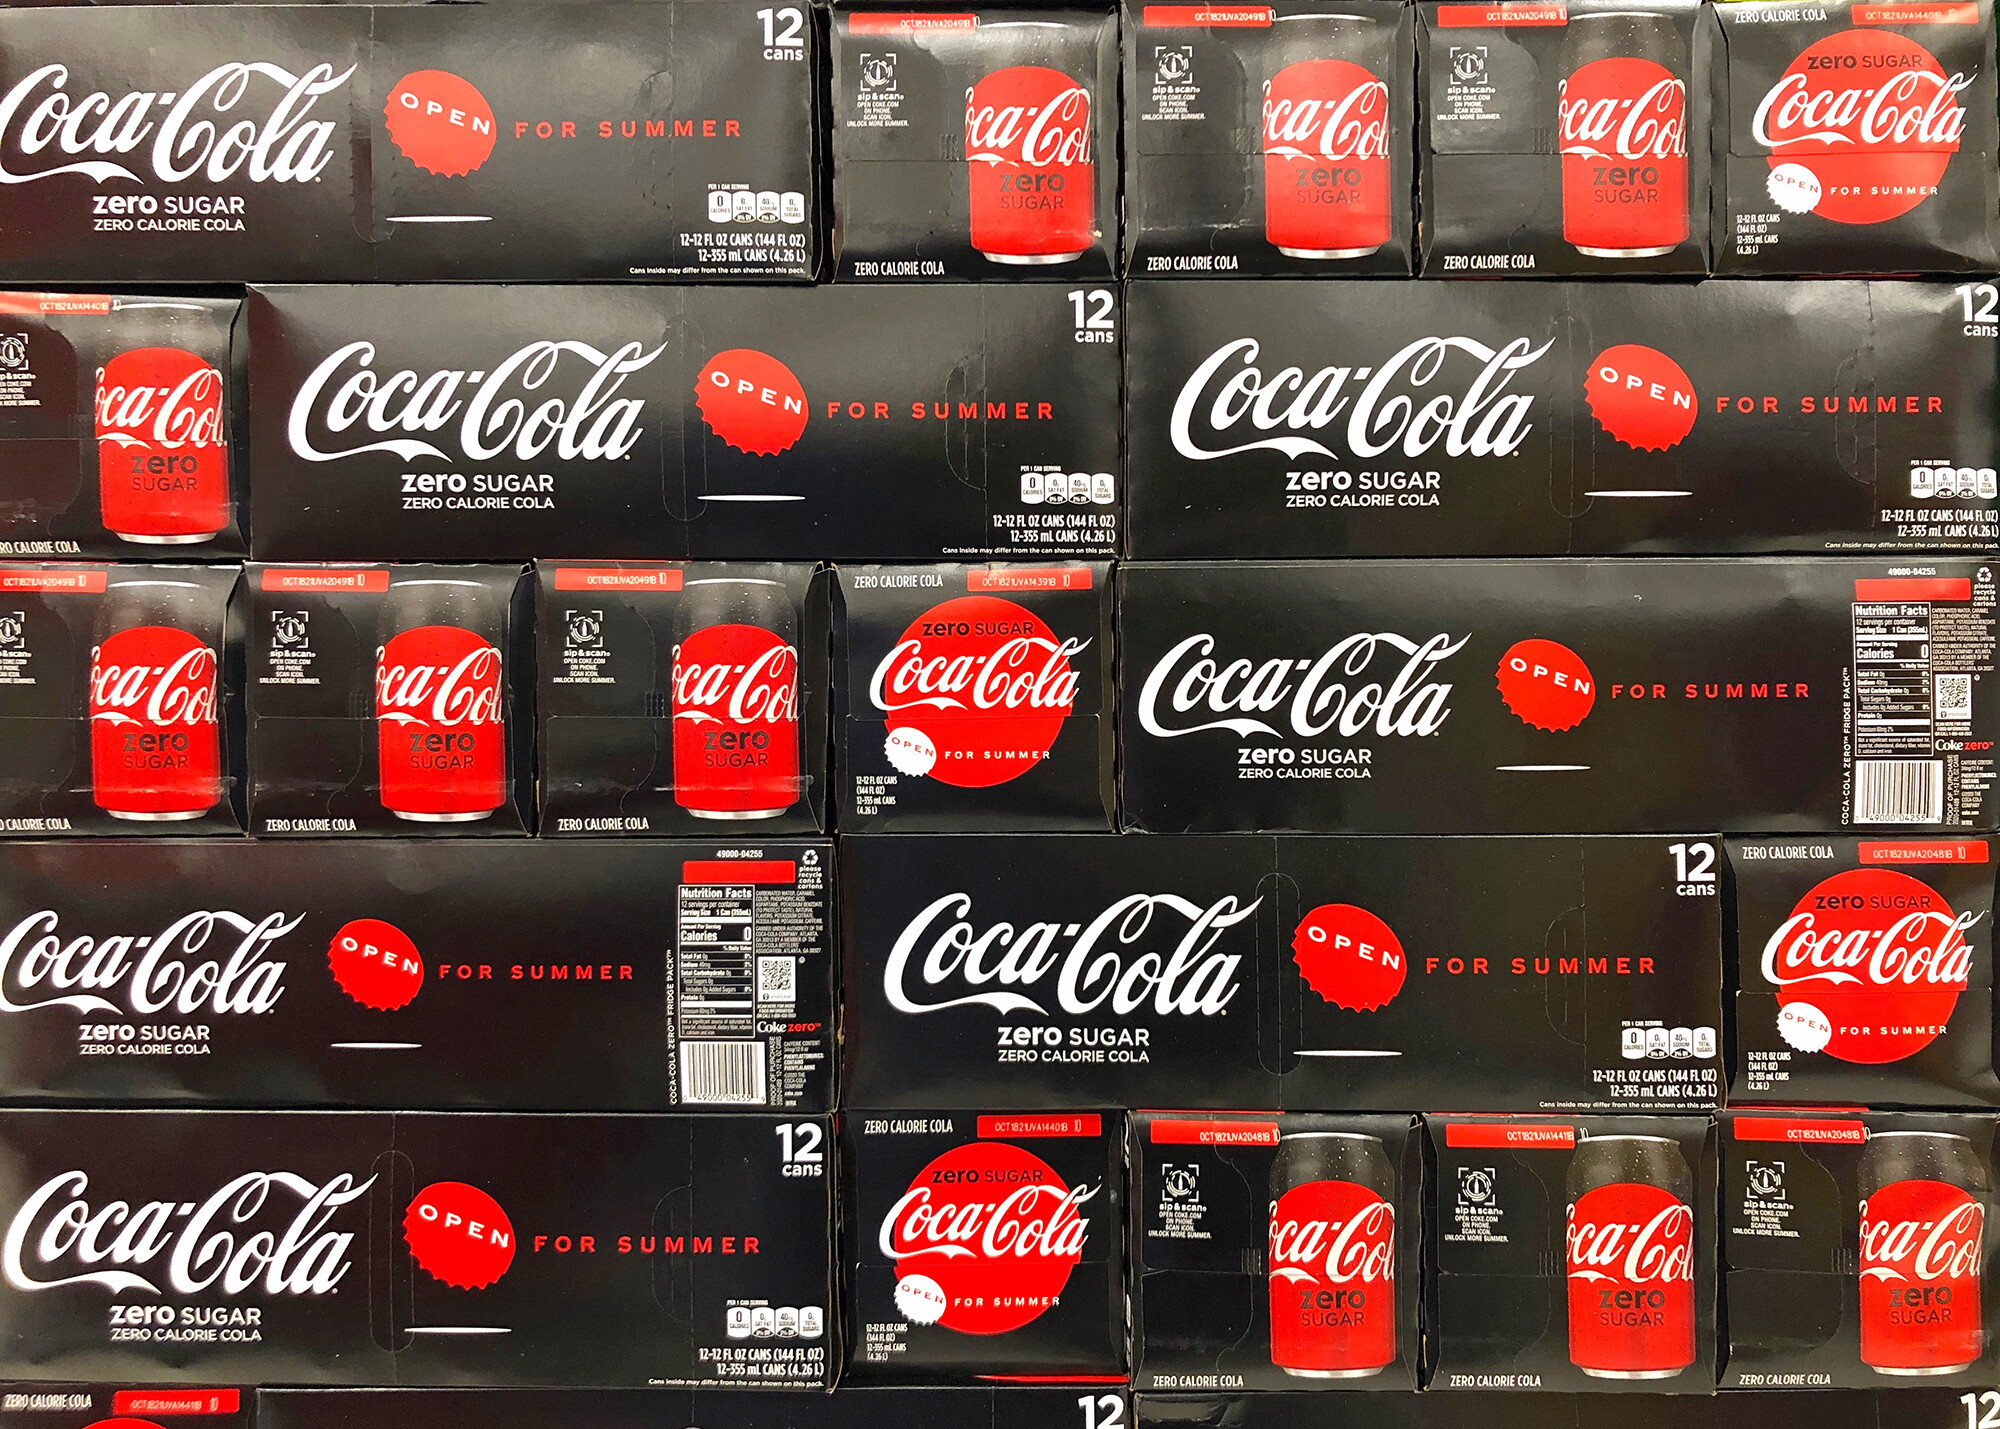 Coke is changing the recipe of a popular drink. A lot could go wrong